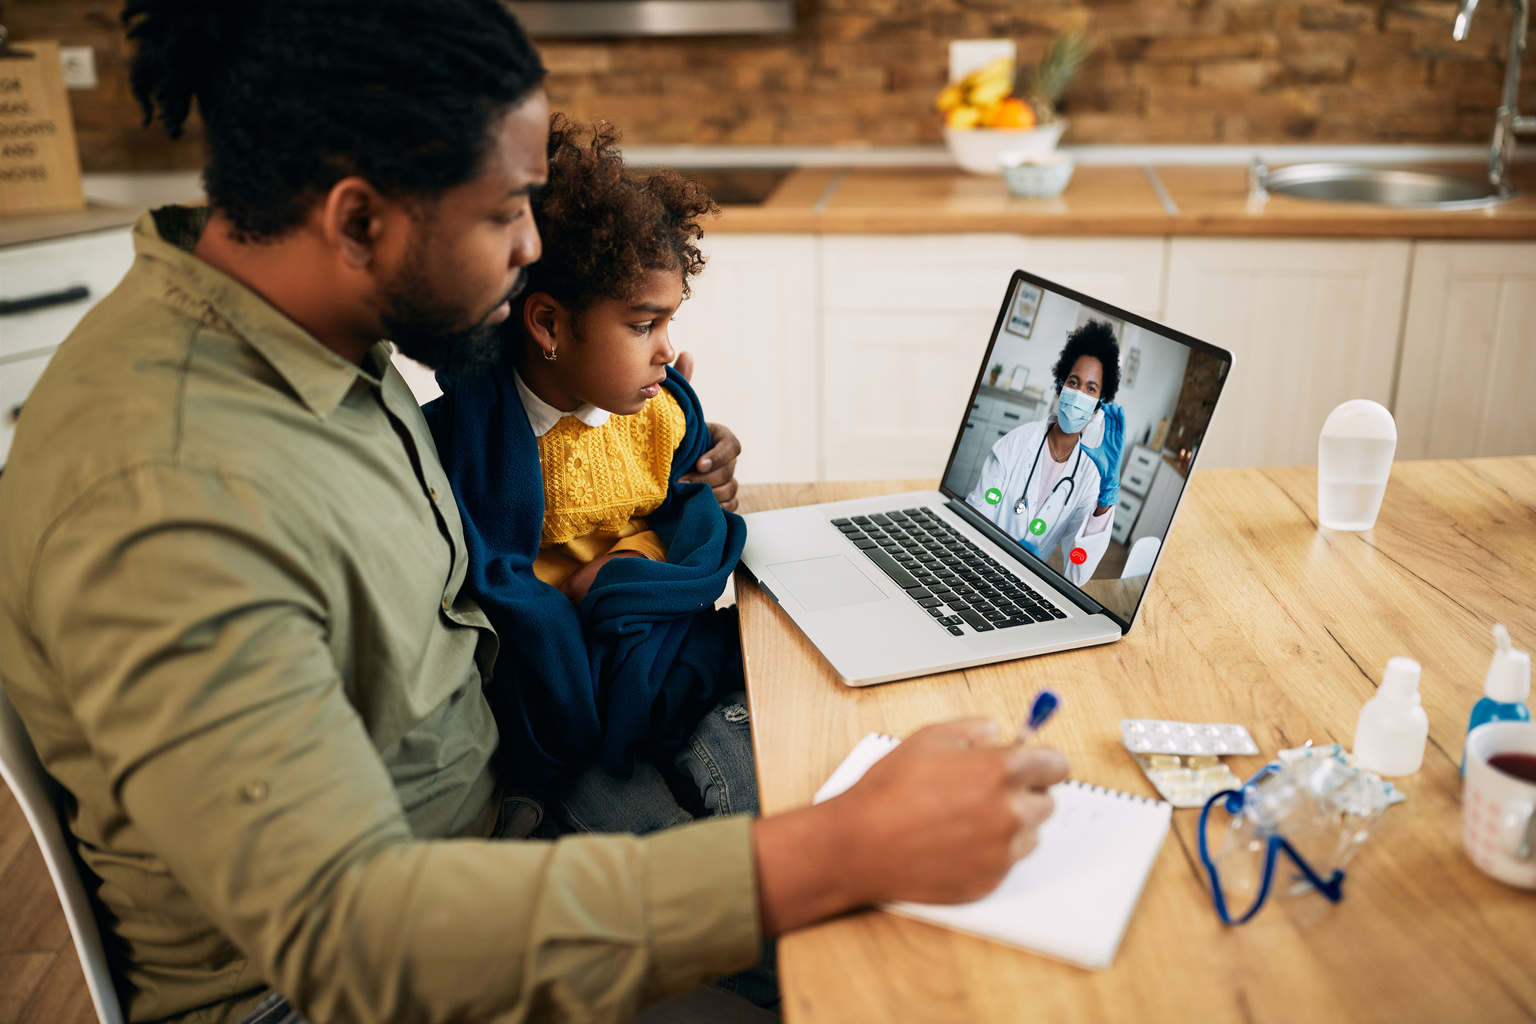 Father on a telemedicine call with child